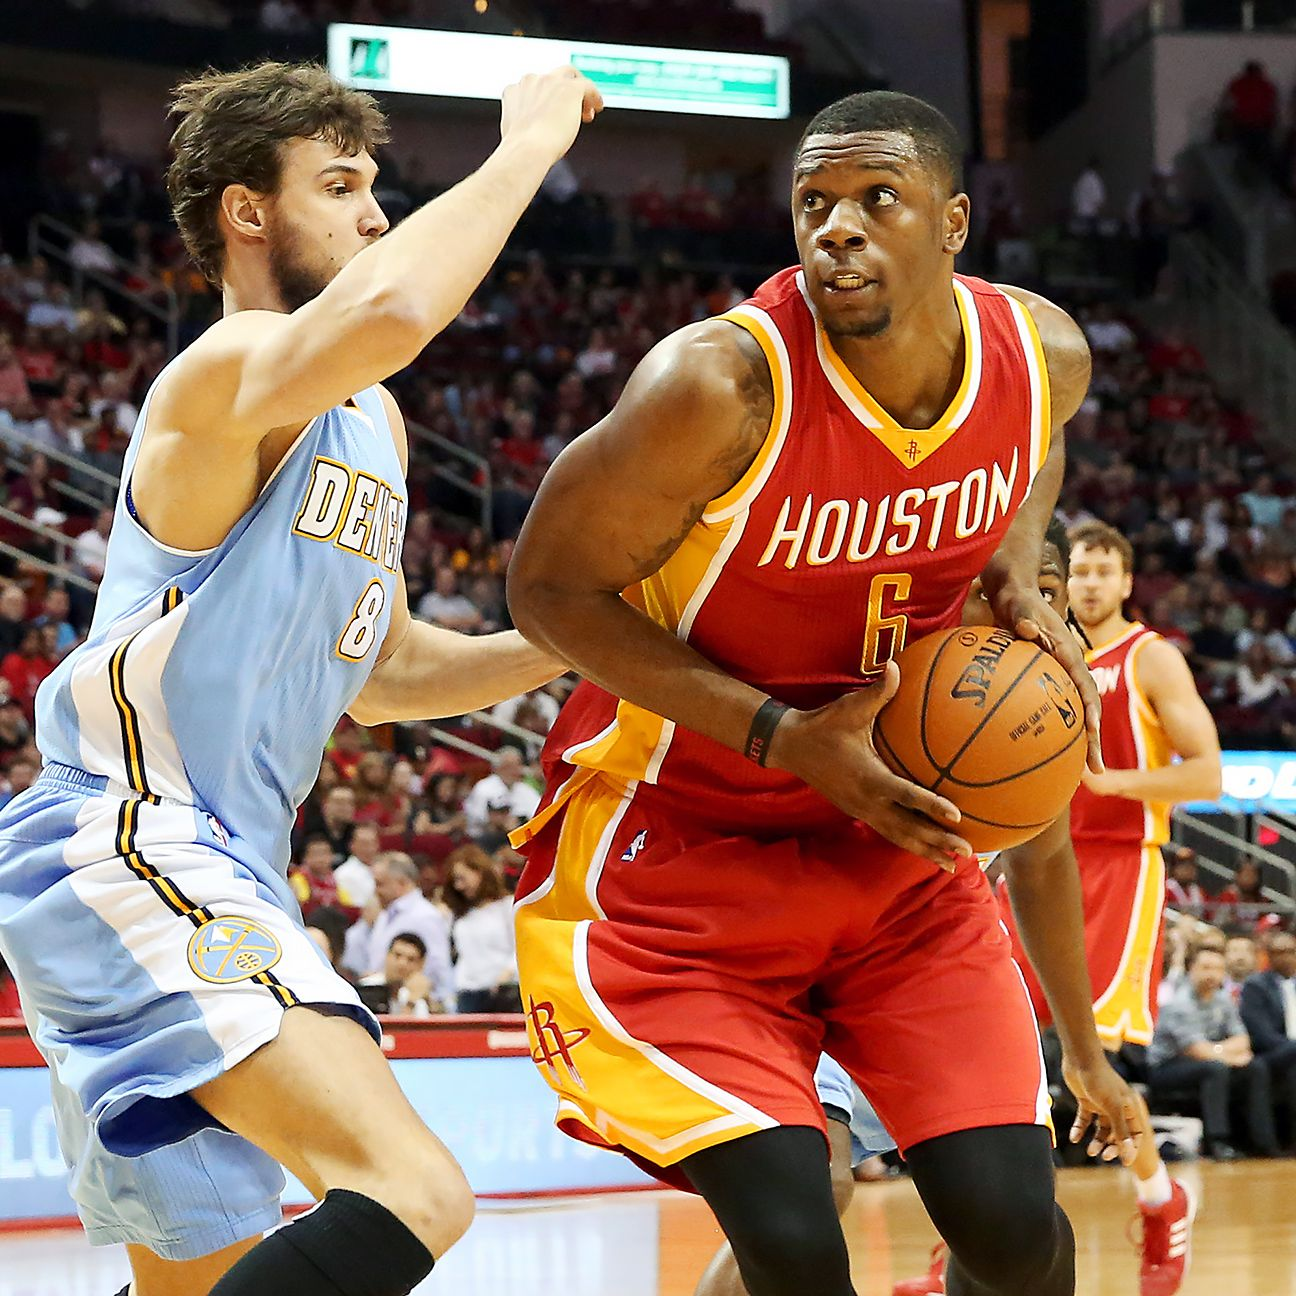 Houston Rockets Where To Watch The Upcoming Match Espn: Terrence Jones Misses Practice With Bruised Ribs